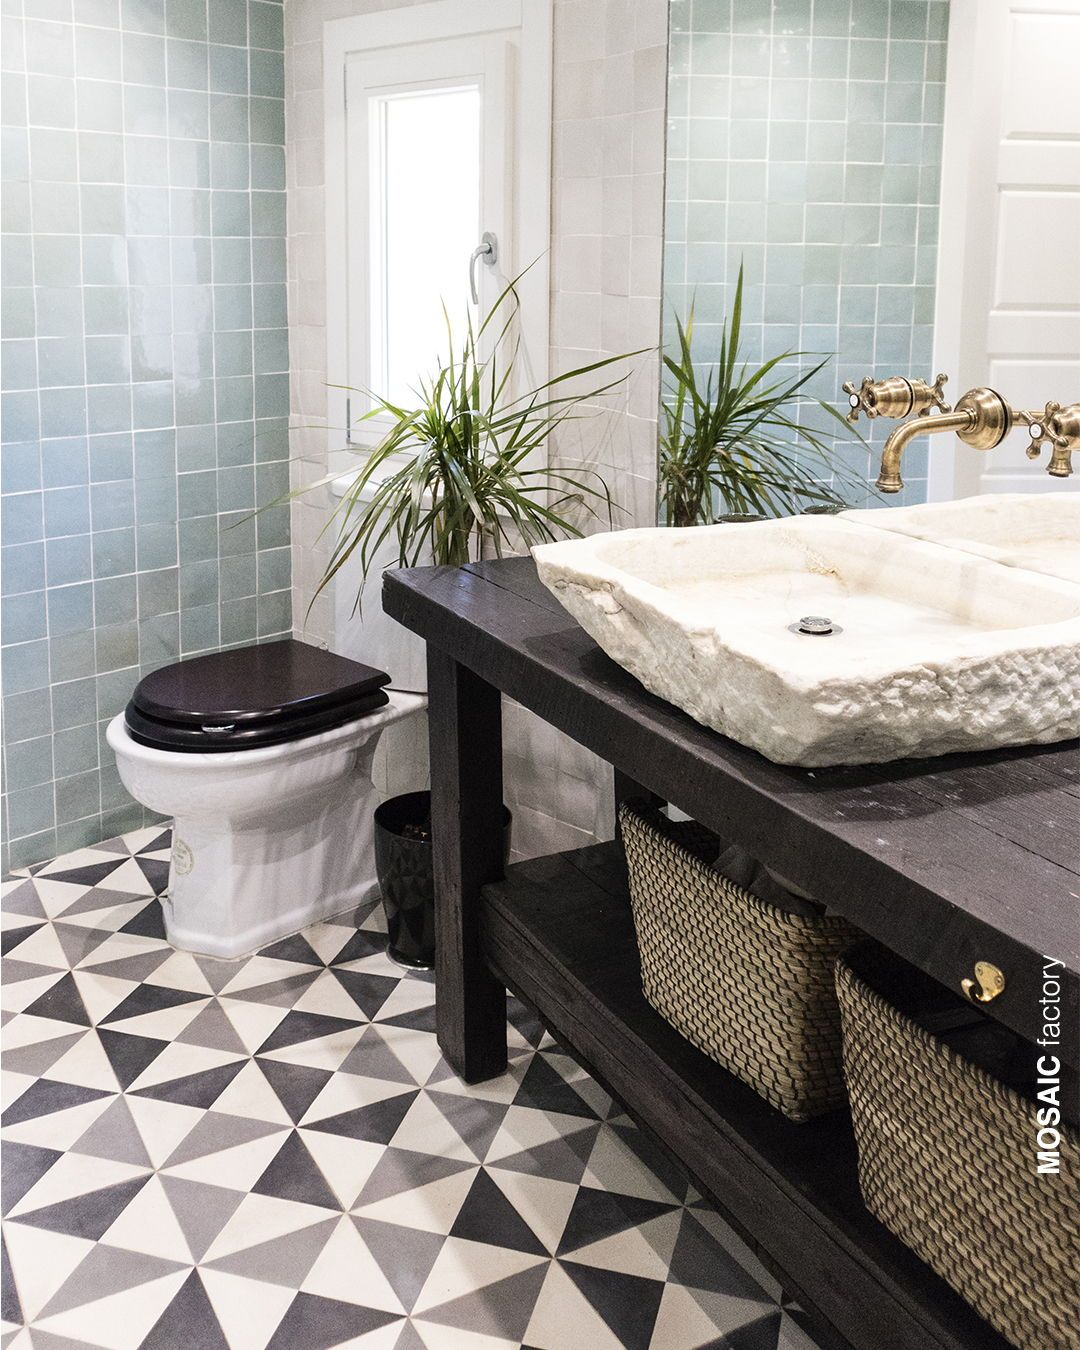 Light Blue Bathroom Wall Tiles And Grey And White Cement Tiles With Geometric Tile Pattern Geometric Tiles Bathroom Bathroom Wall Decor Diy Grey Bathroom Floor